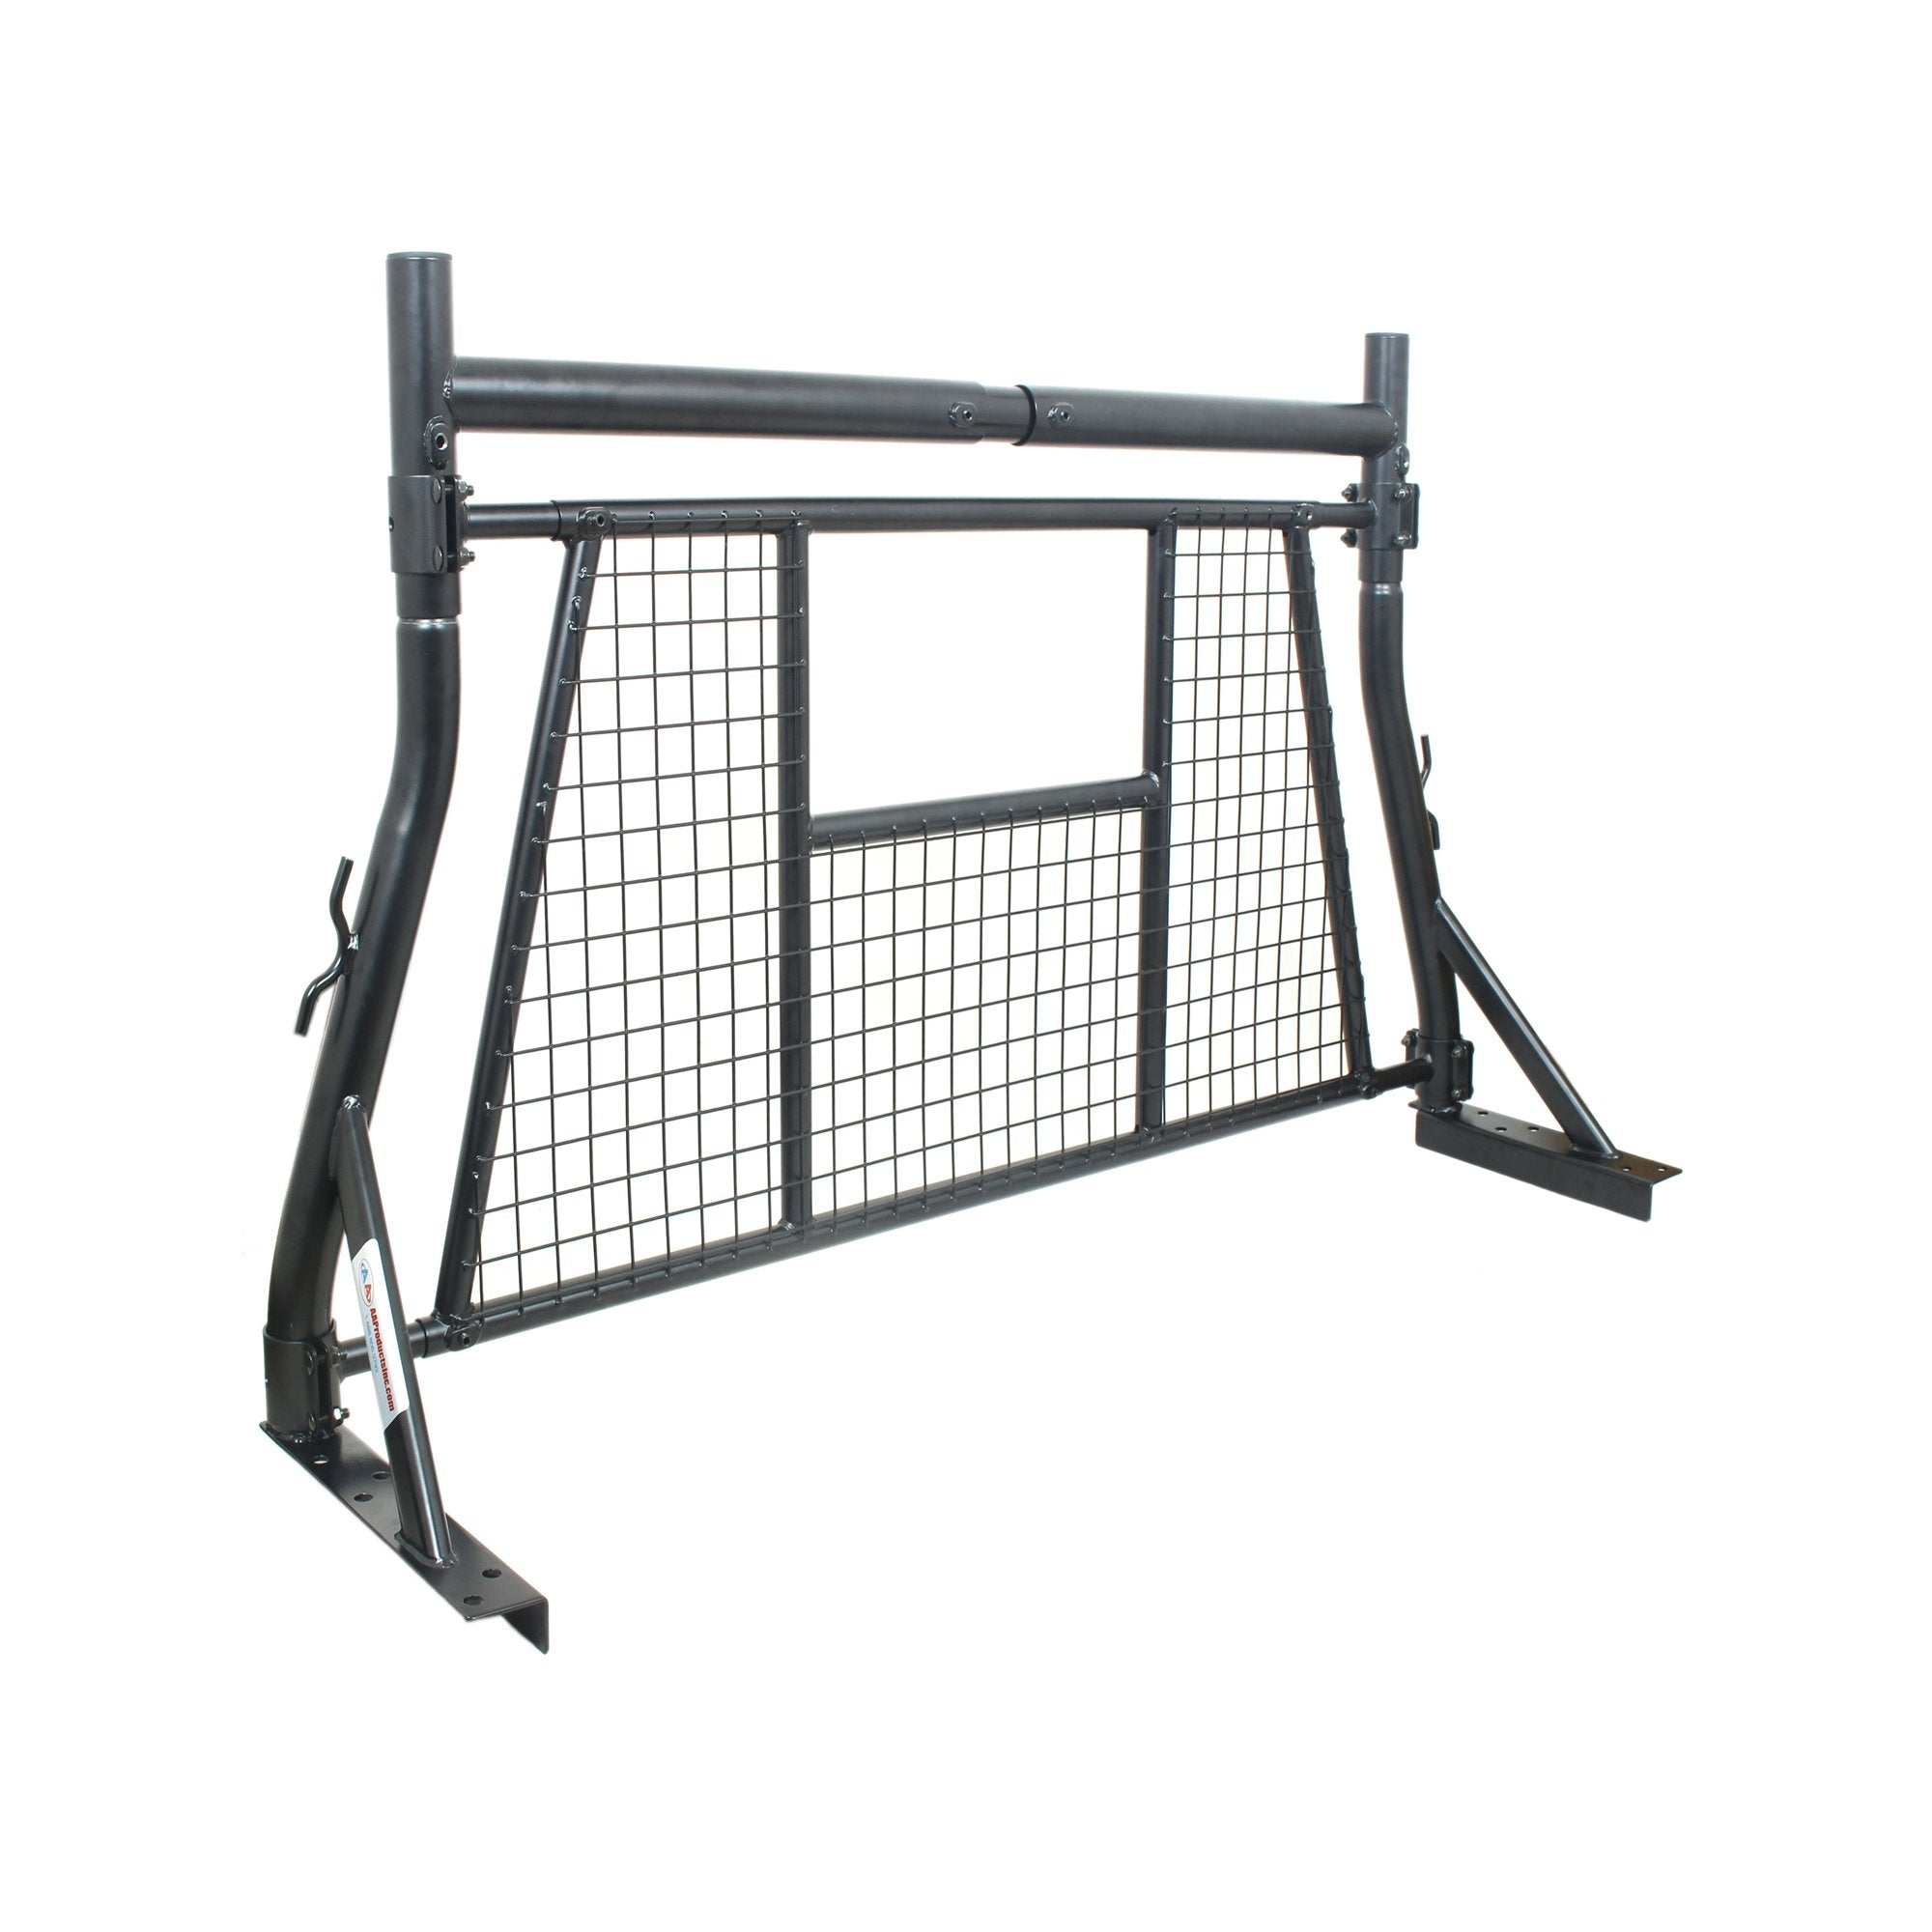 machines t shipping lat trojan racks category free basketball smith fitness attachment cable power cross cs rack mega product